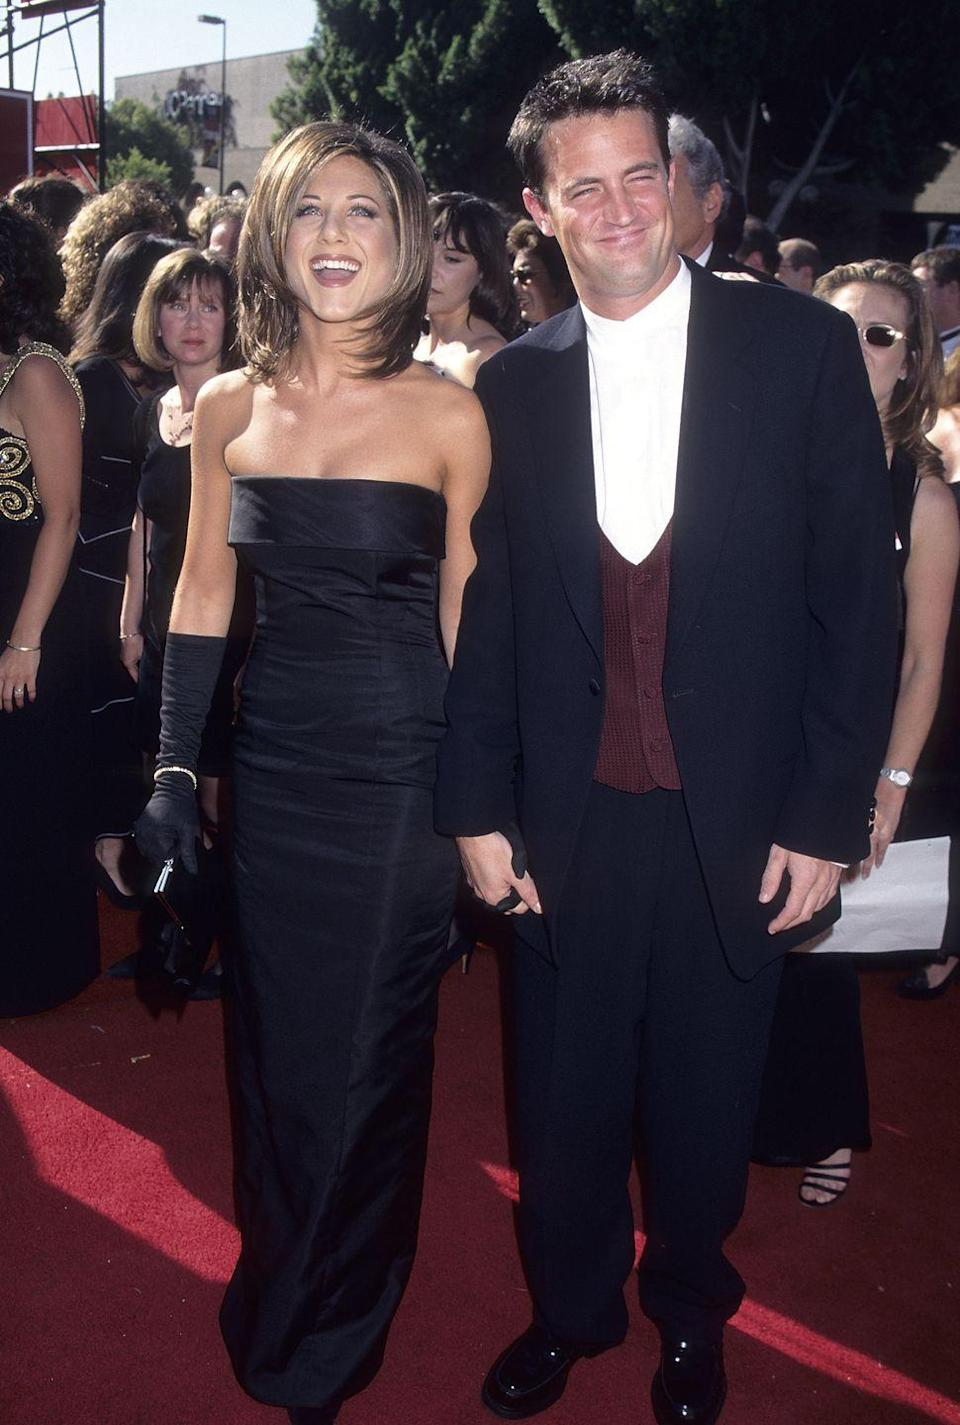 """<p>Jennifer Aniston wore a classic black dress when she walked the Emmys red carpet with her <em>Friends</em><span class=""""redactor-invisible-space""""> costar, Matthew Perry, in 1995. </span></p>"""